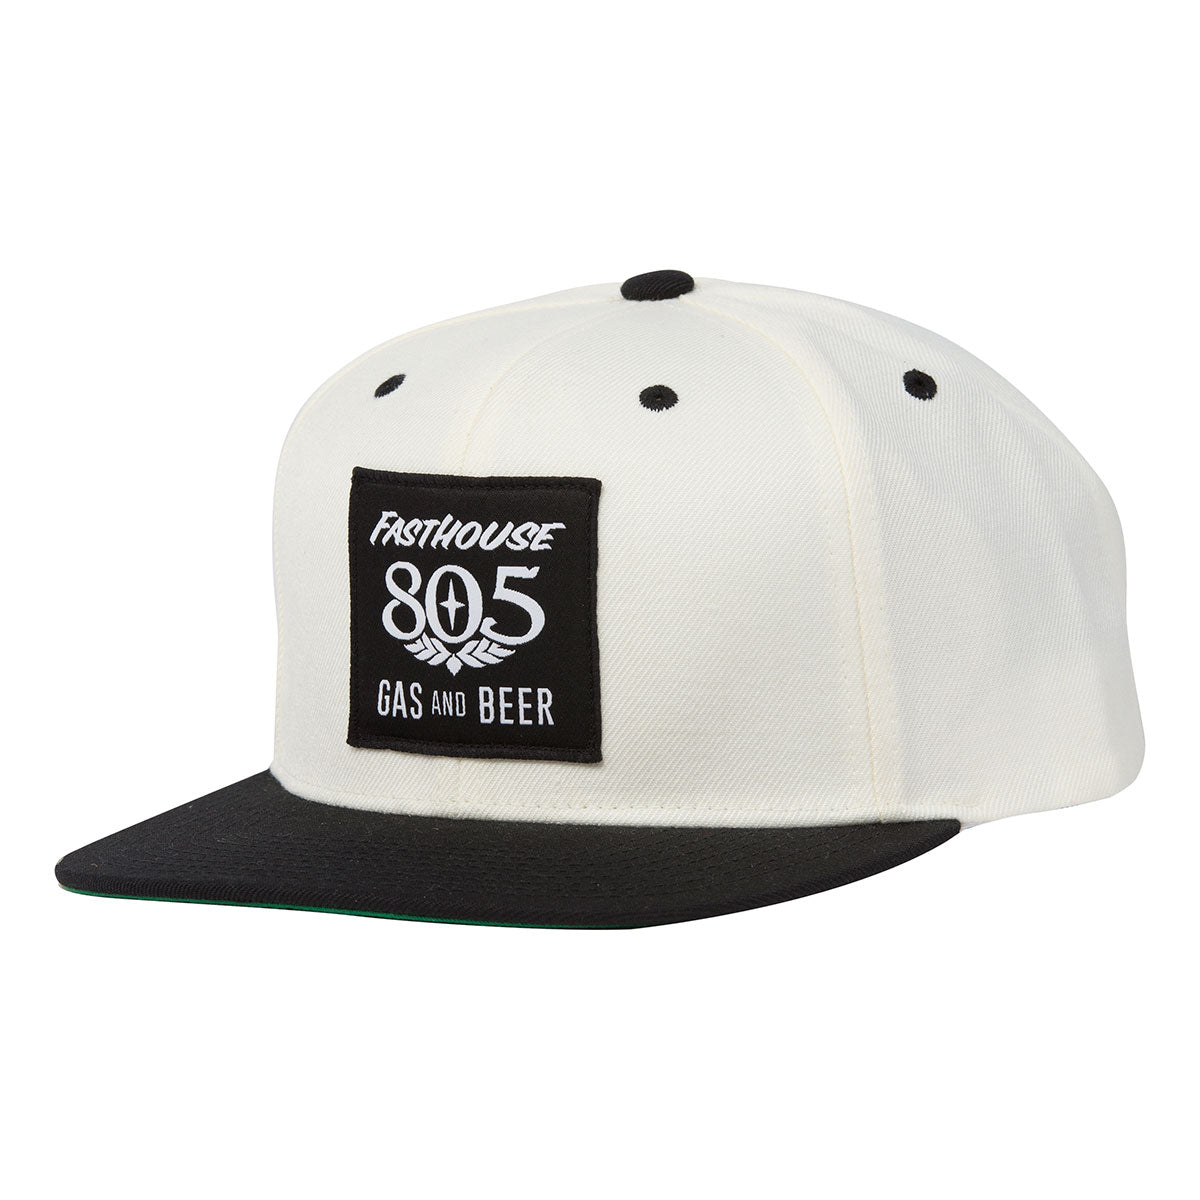 Fasthouse - 805 Hat - White